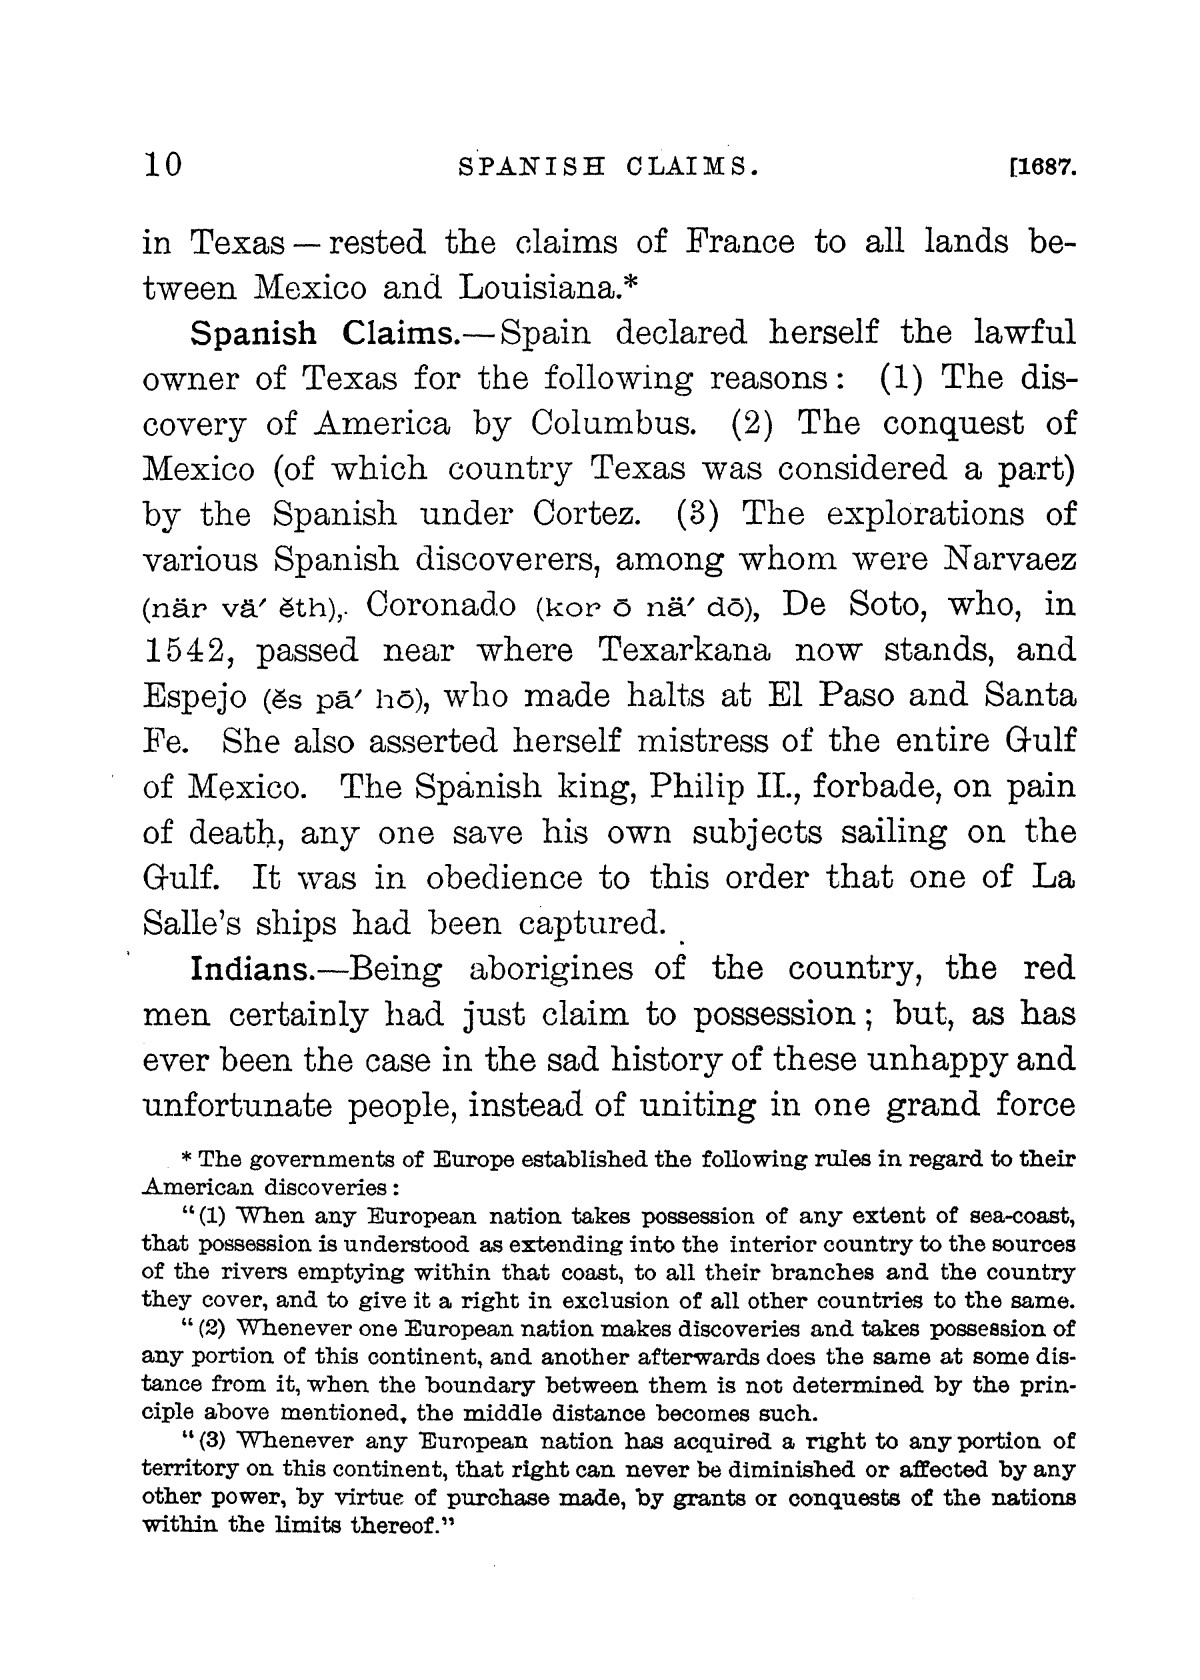 A new history of Texas for schools : also for general reading and for teachers preparing themselves for examination                                                                                                      [Sequence #]: 22 of 412